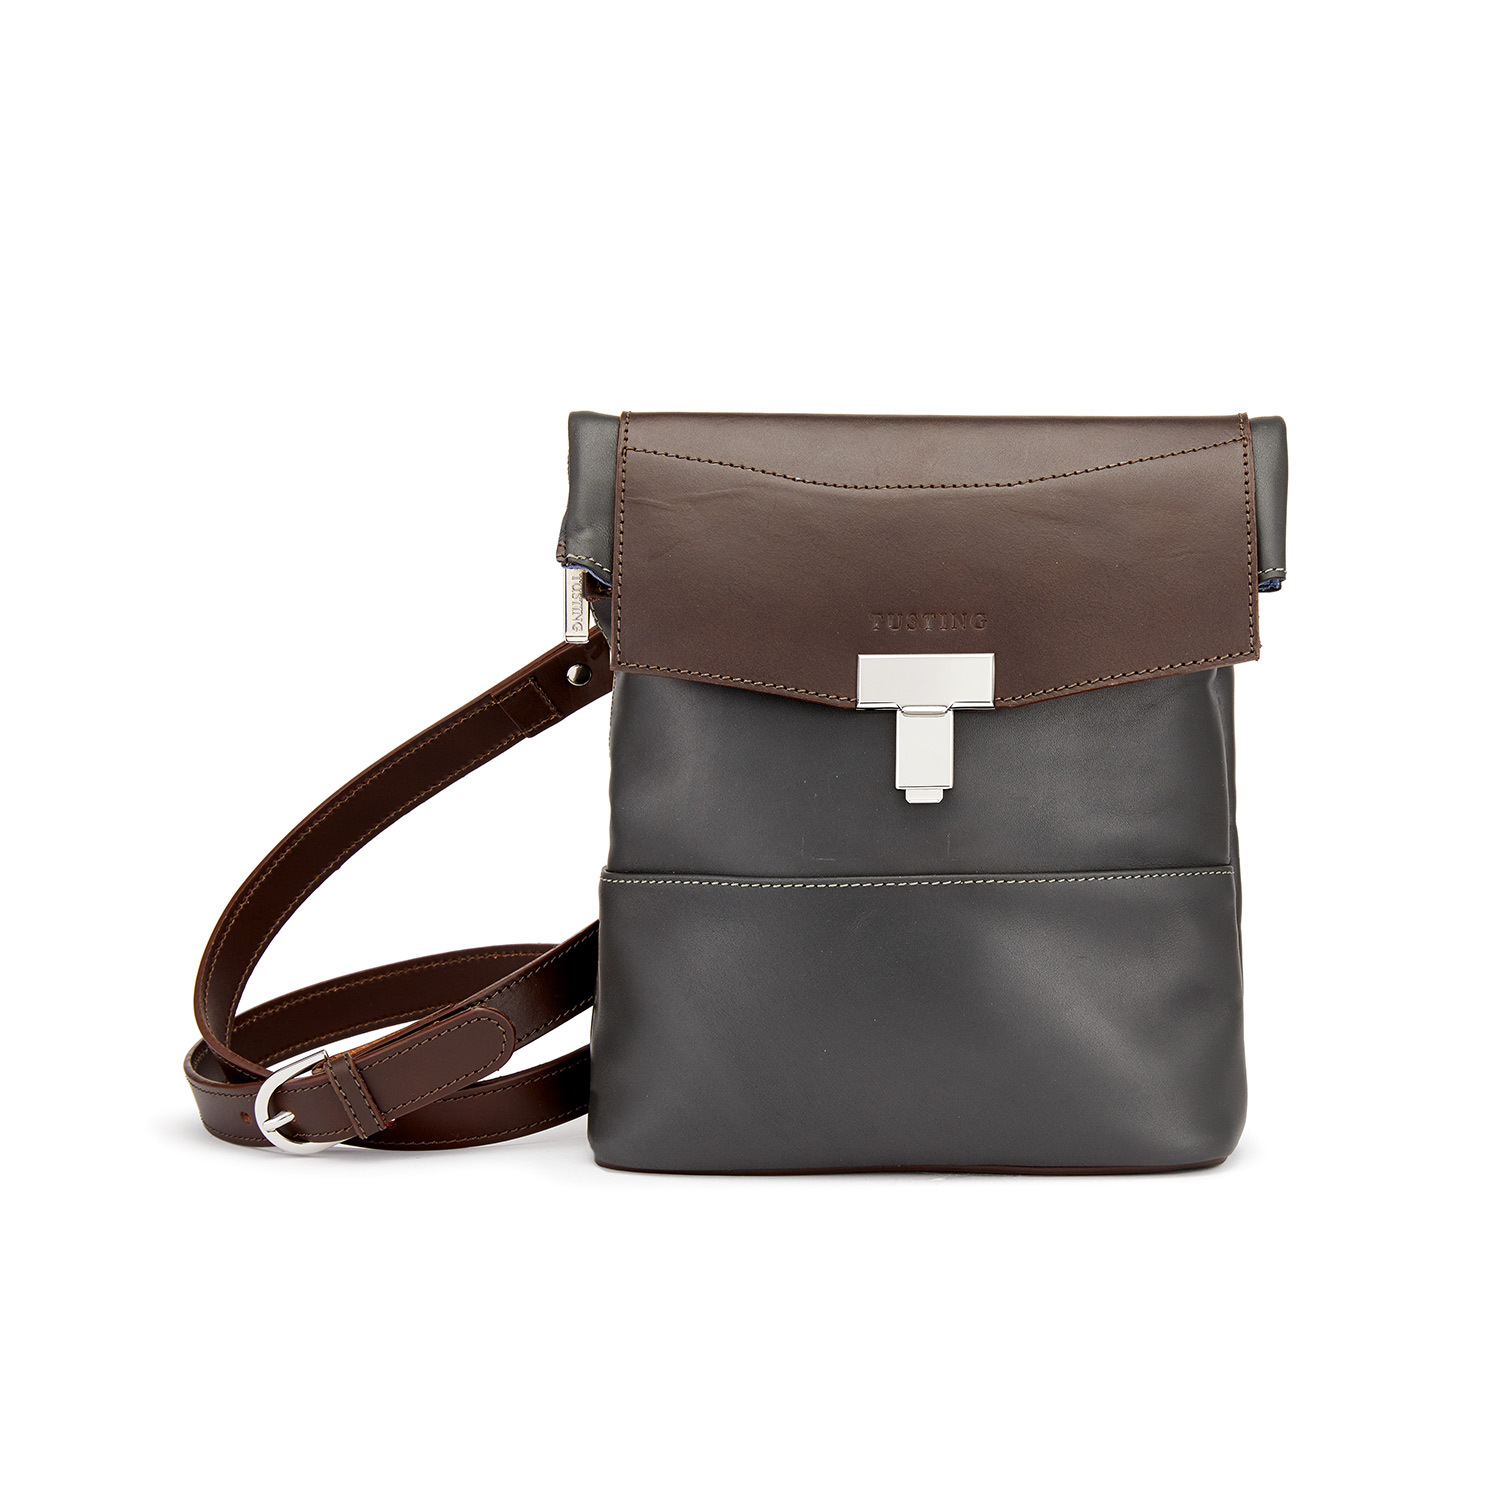 Tusting Ripon Reporter Leather Messenger Crossbody Bag in Pewter and Chocolate Brown